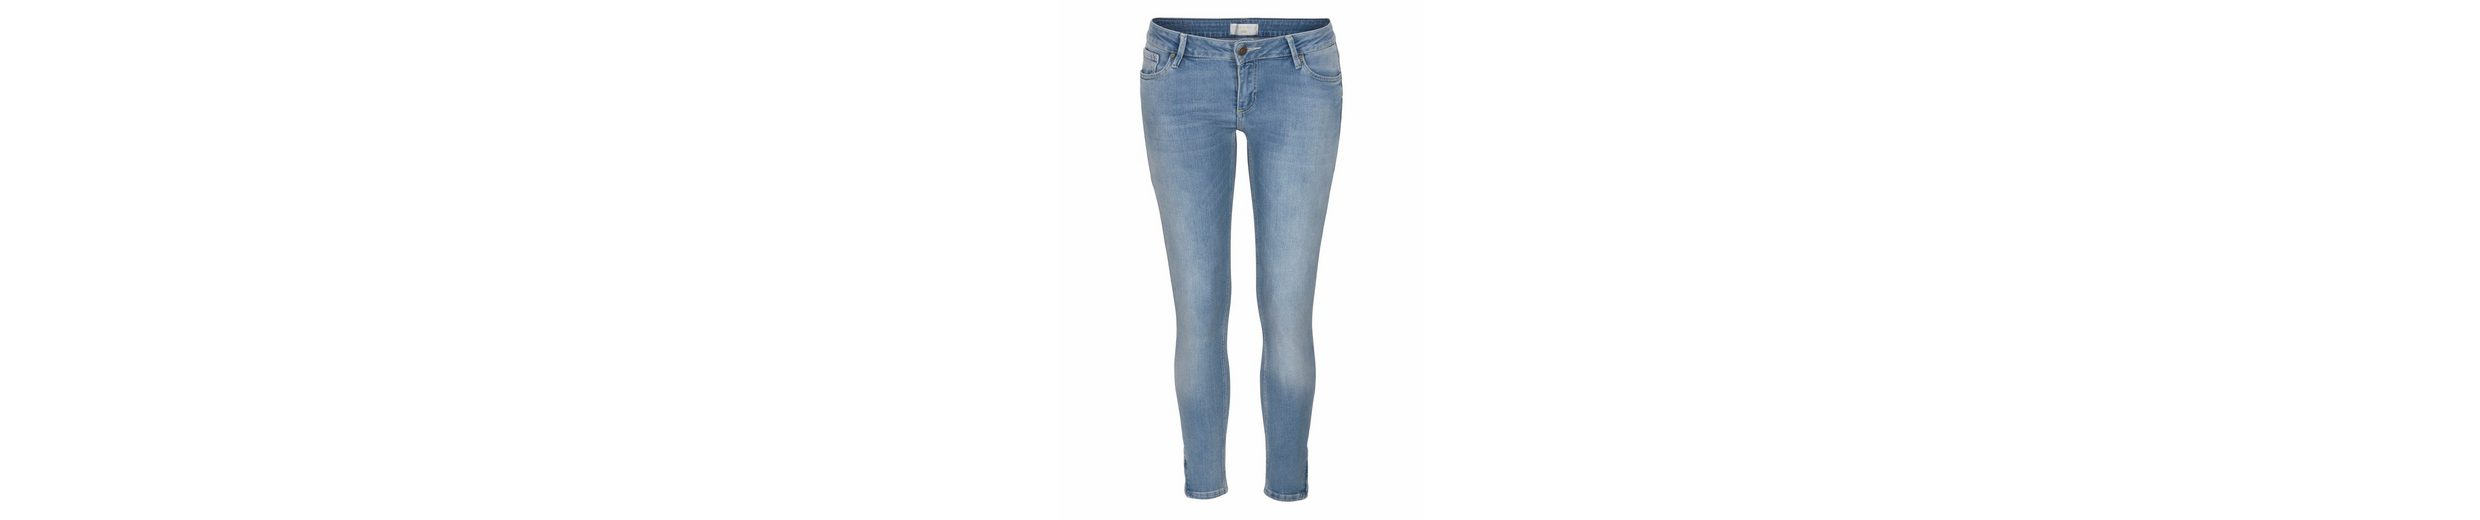 Cross Jeans® Stretch-Jeans 7/8 Giselle, mit kleinem Zipper am Saum